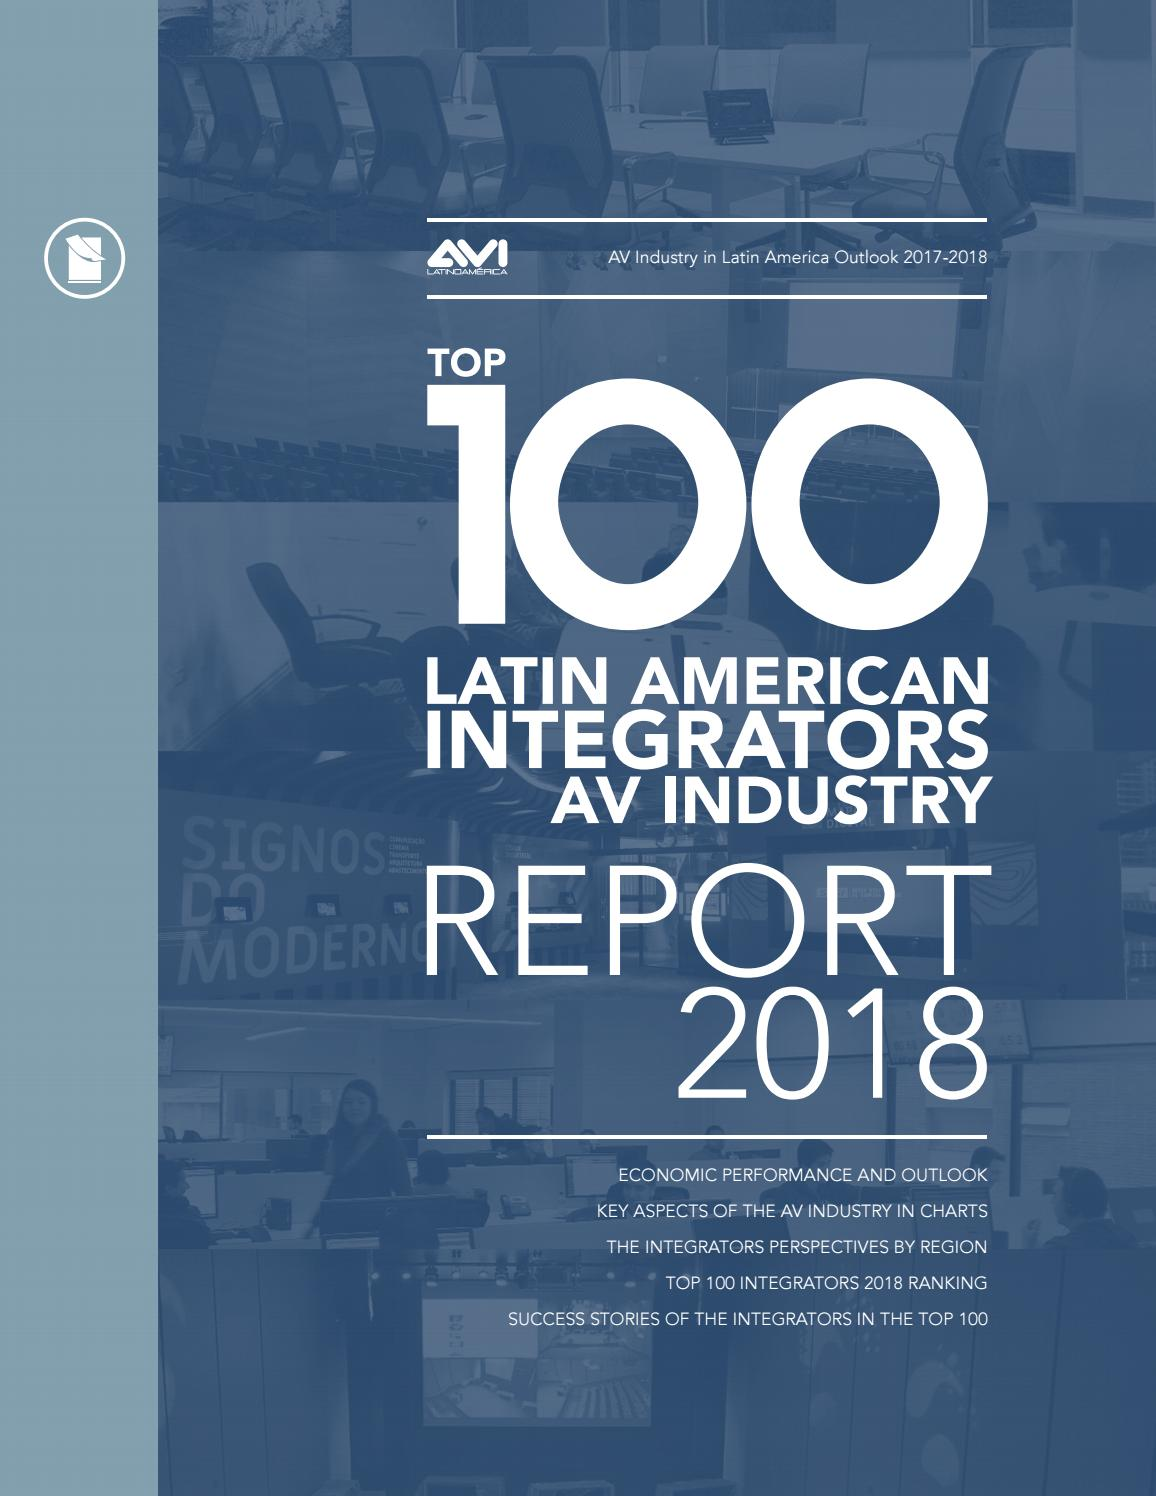 TOP IOO LATIN AMERICAN INTEGRATORS AV INDUSTRY • REPORT 2018